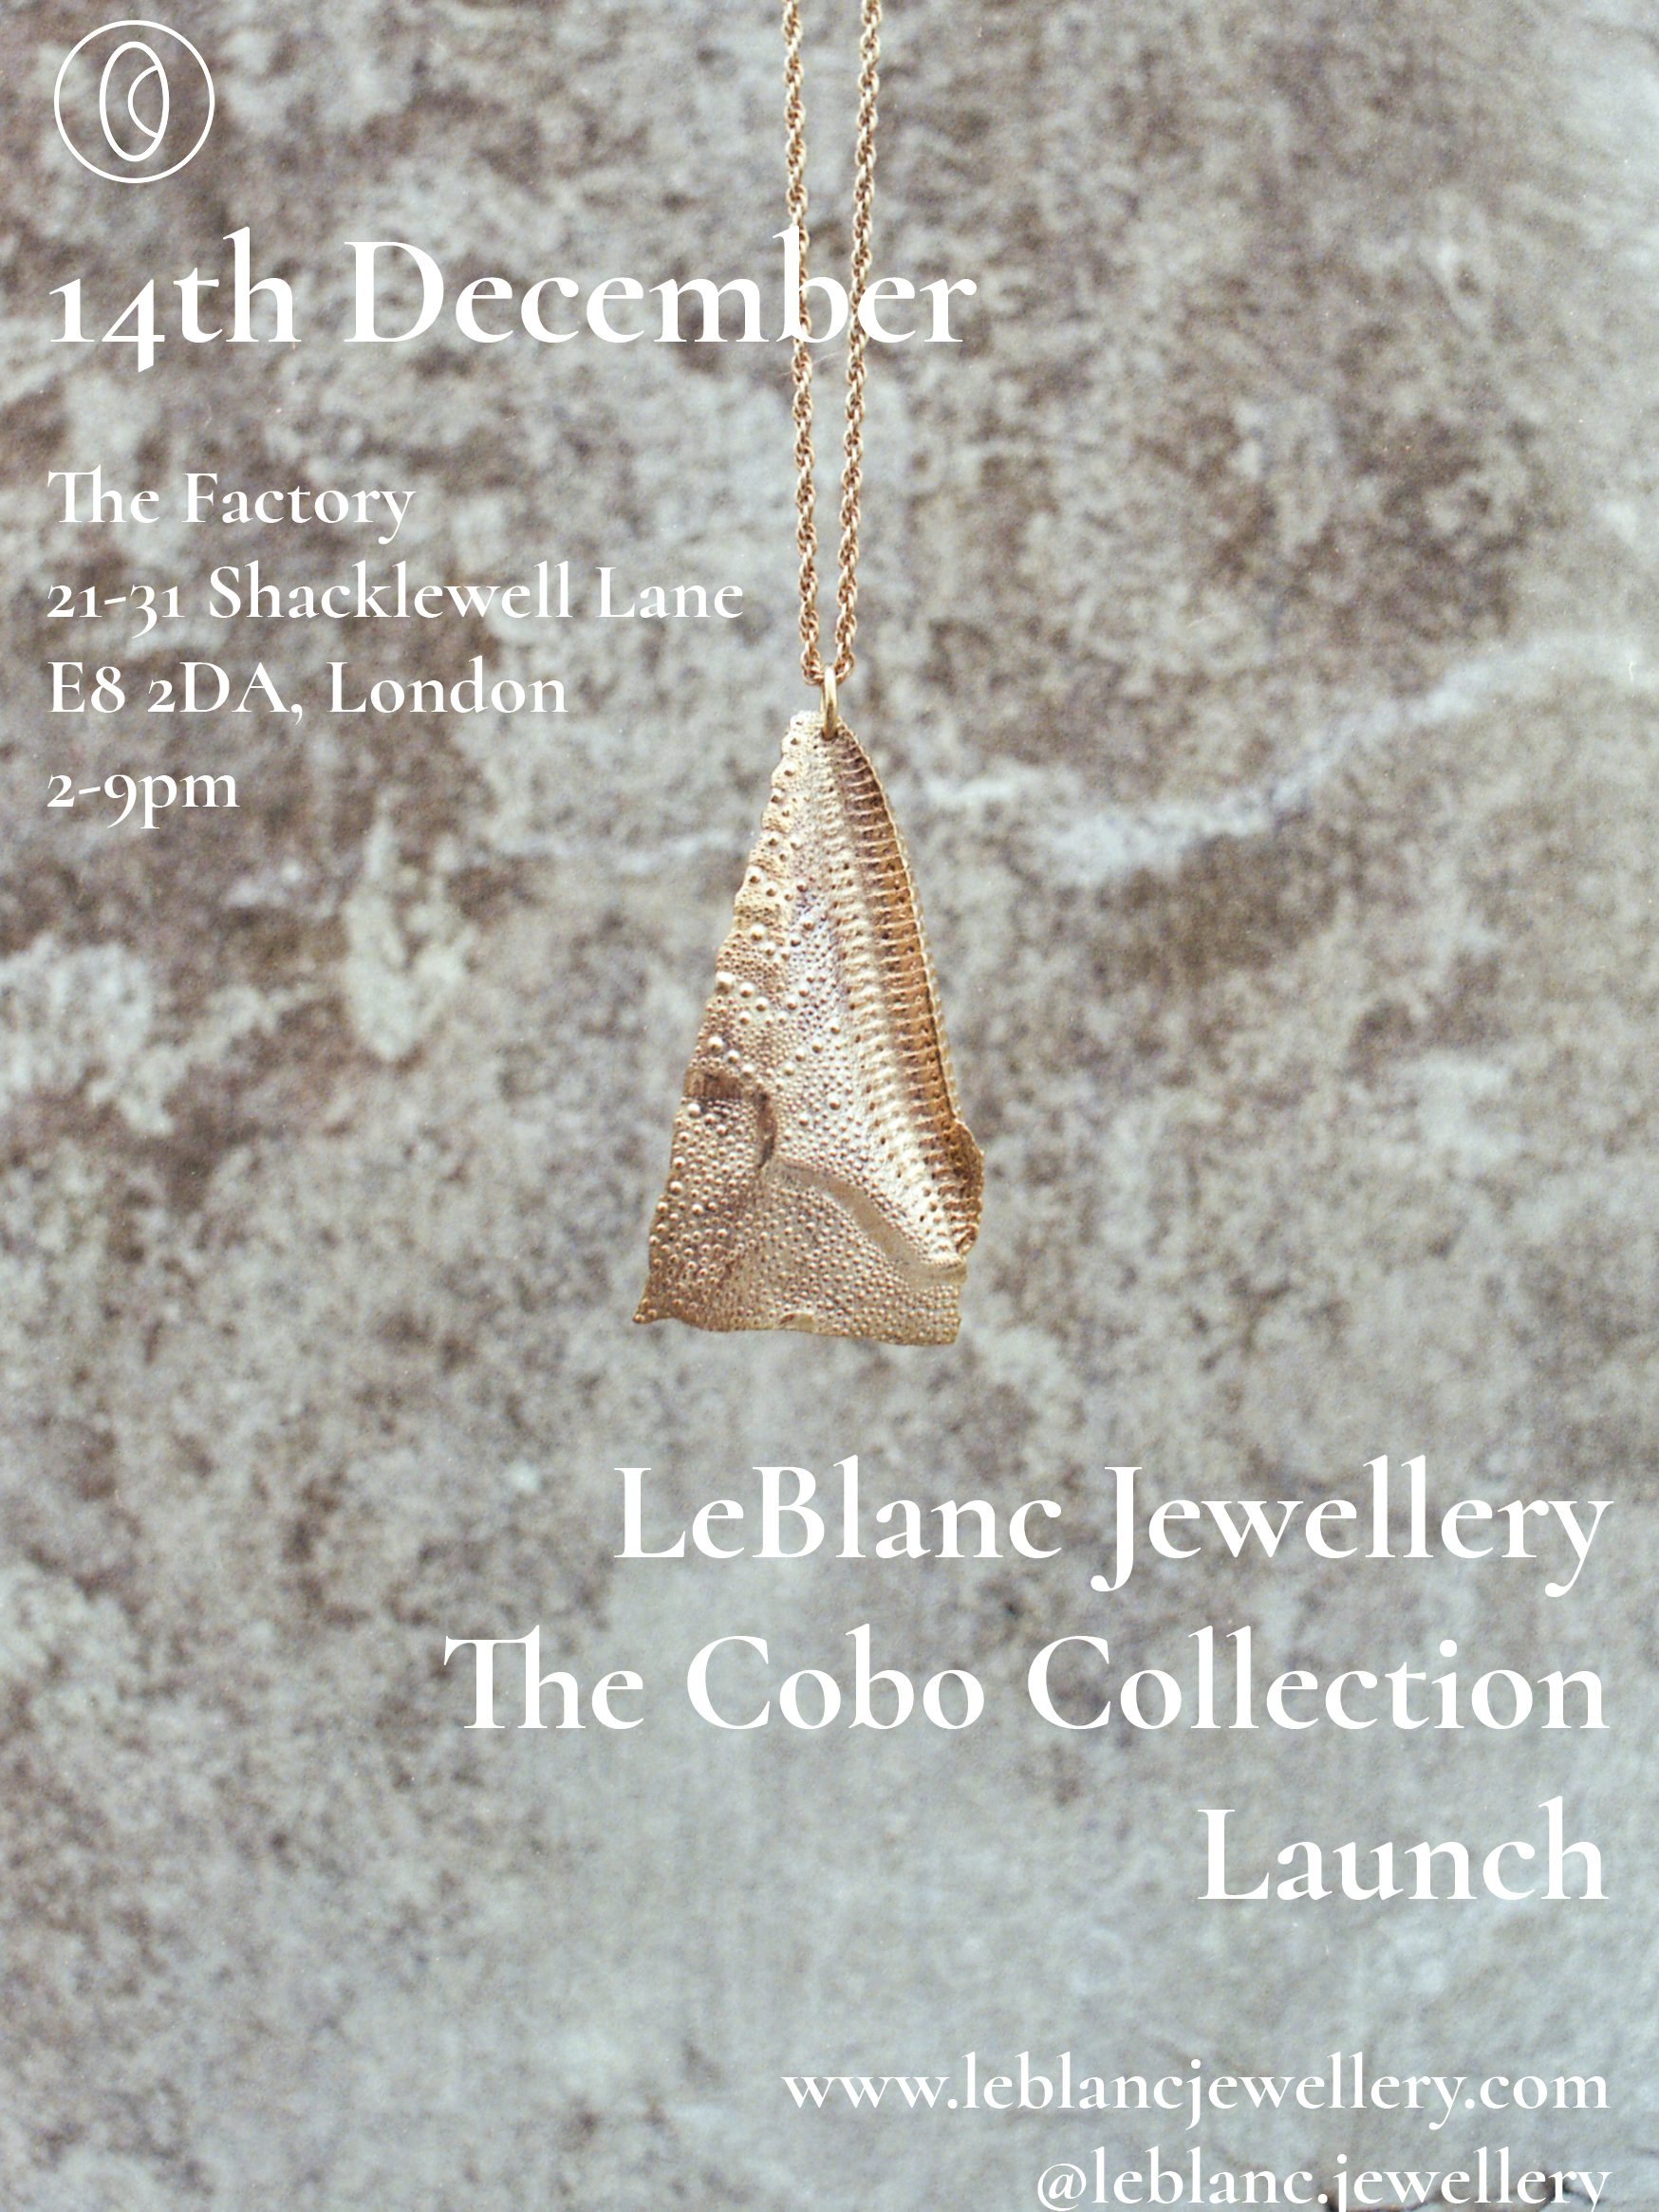 LeBlanc // The Cobo Collection Launch